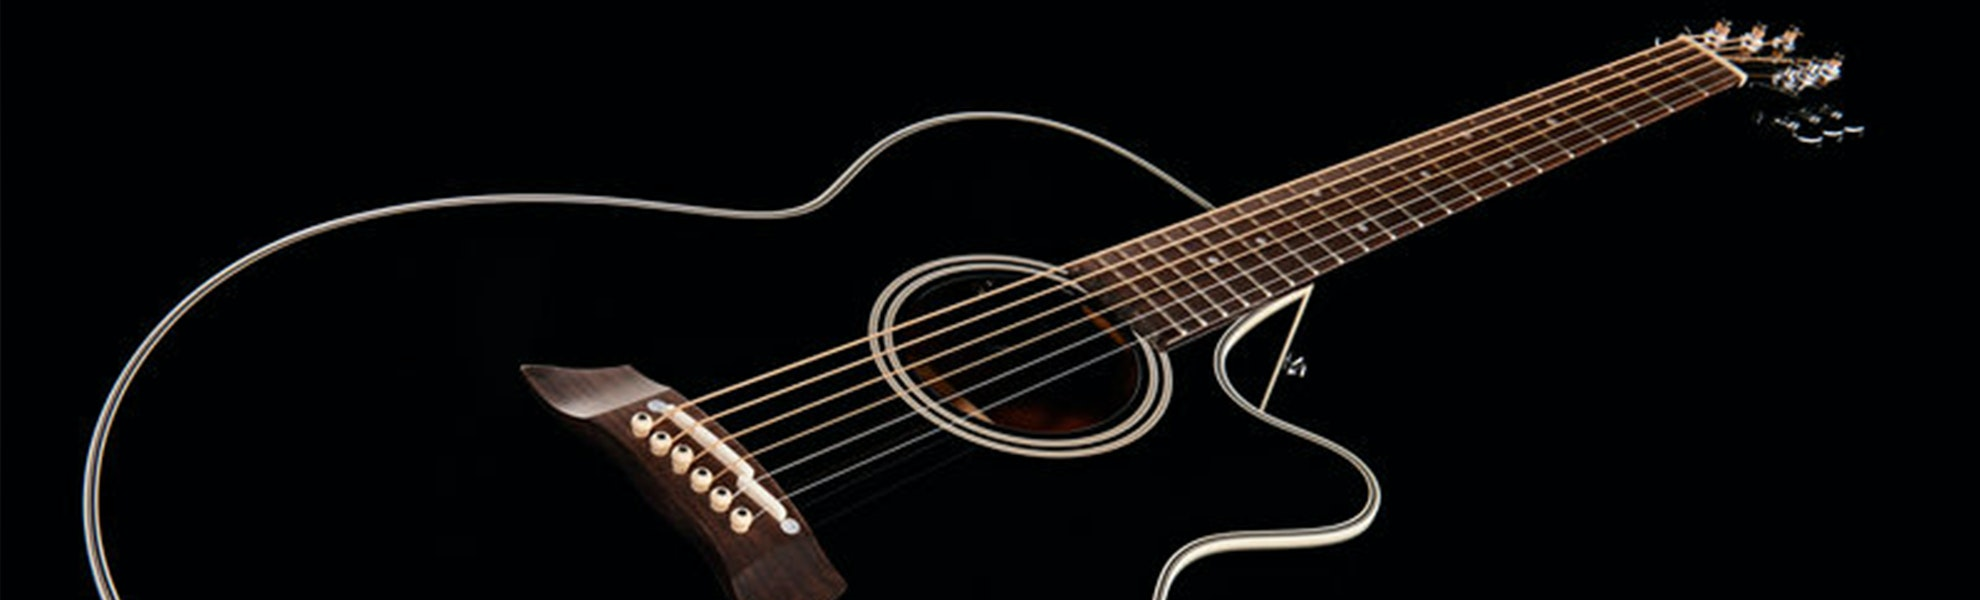 Takamine EF261SBL Acoustic-Electric Guitar